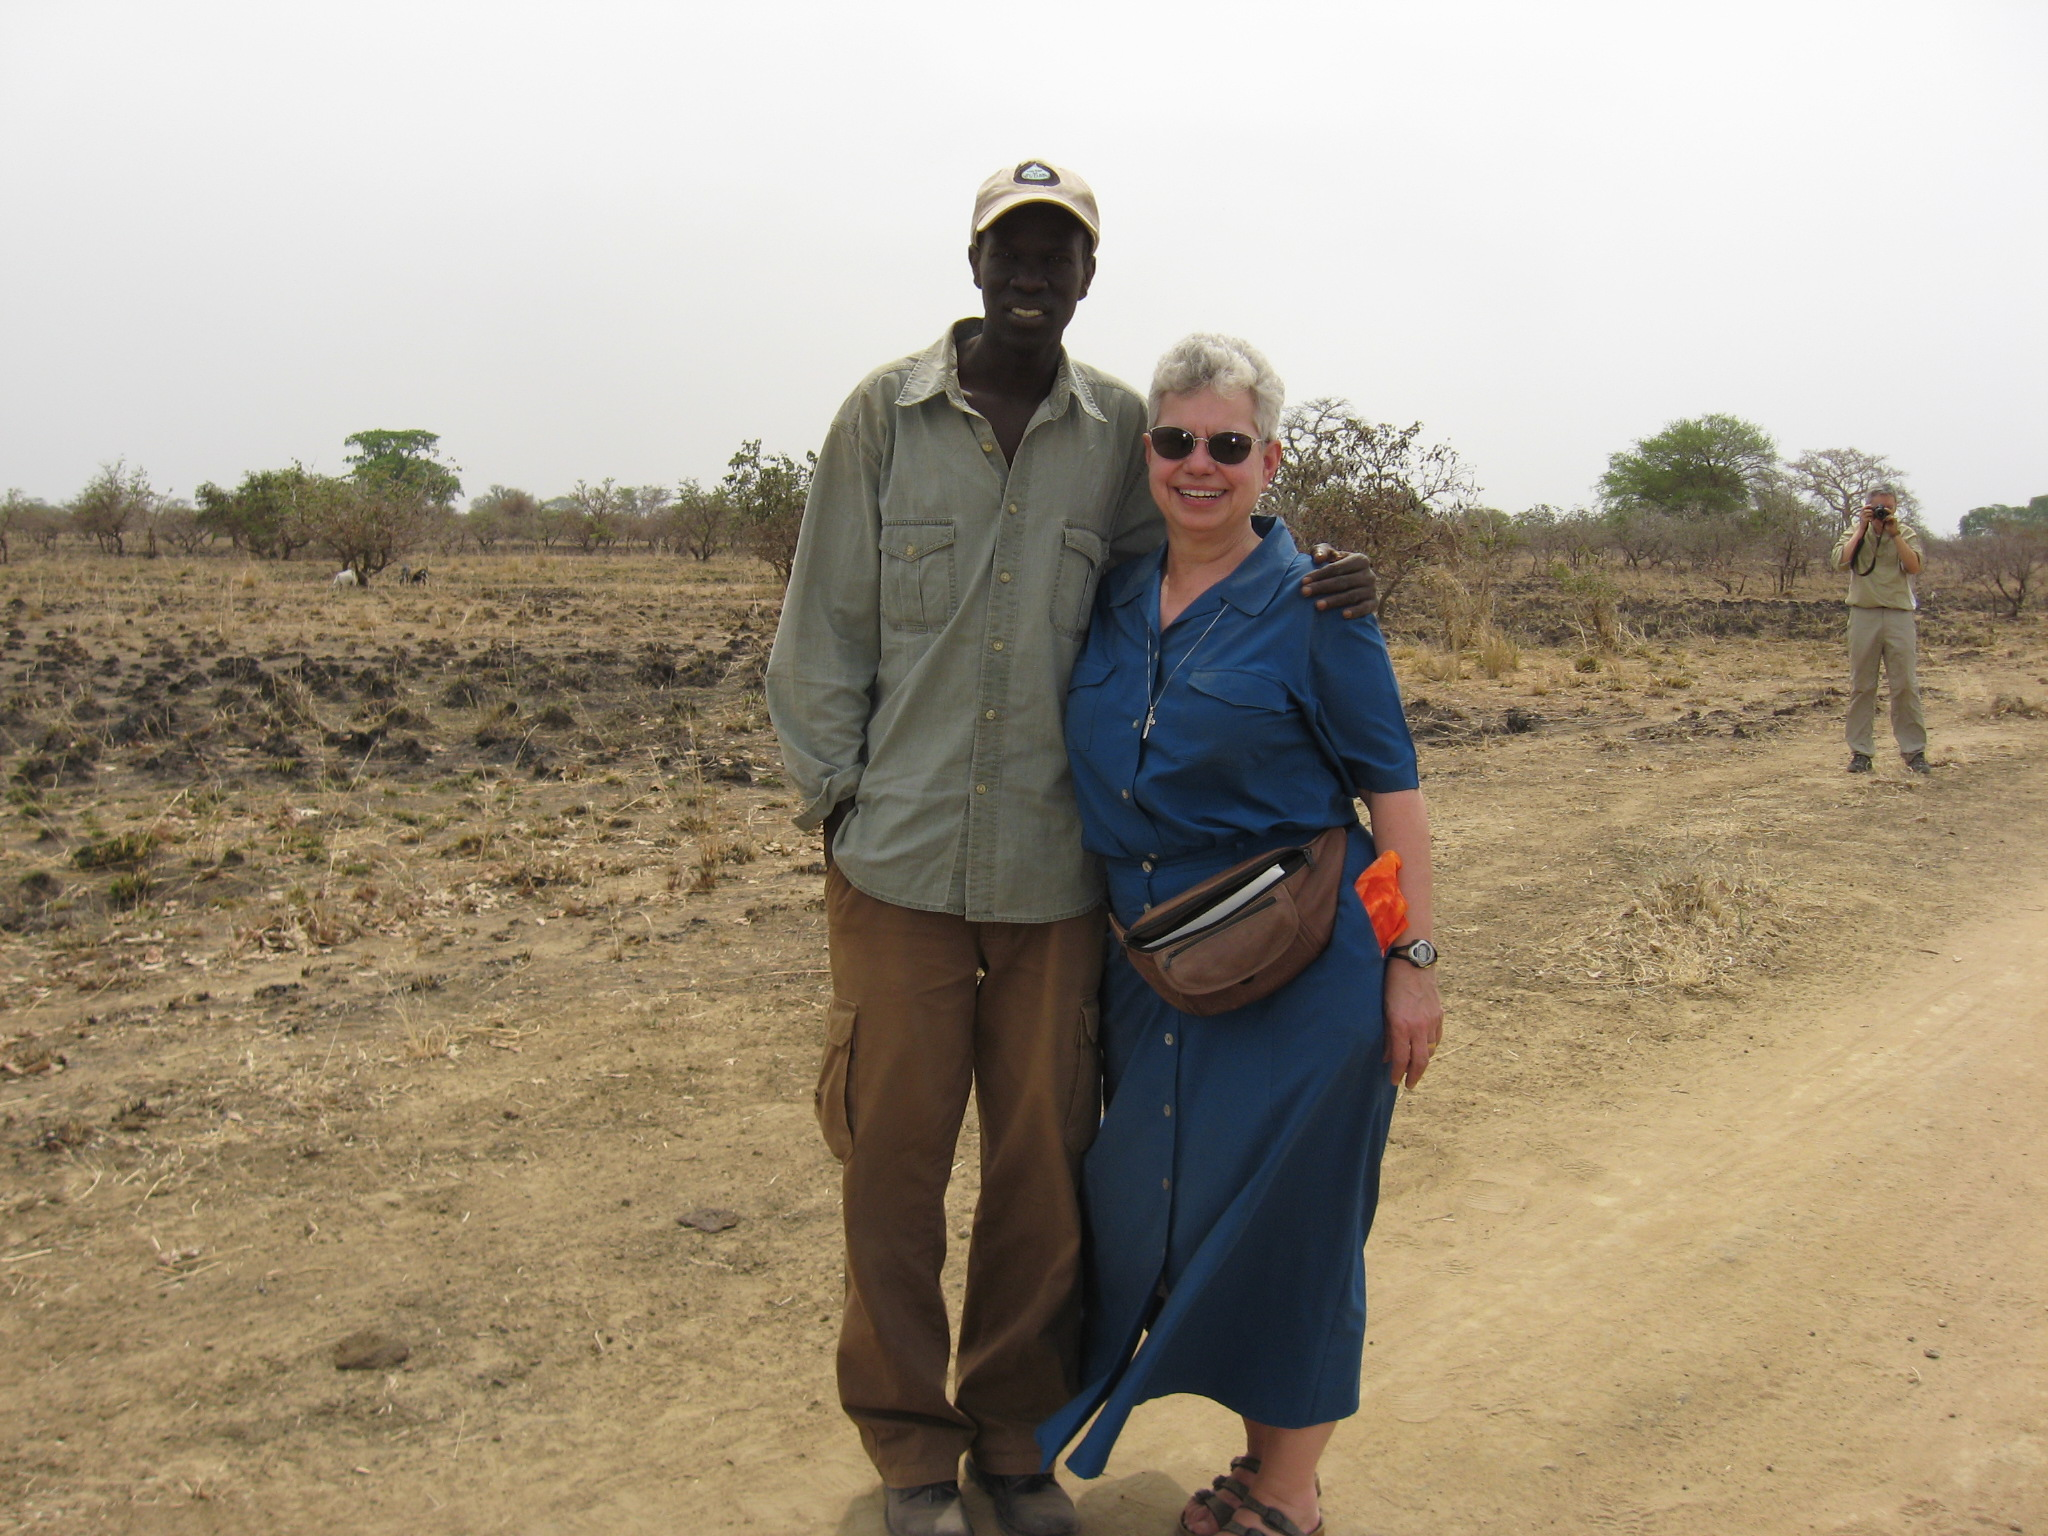 Nancy and Salva in 2008 in south sudan.